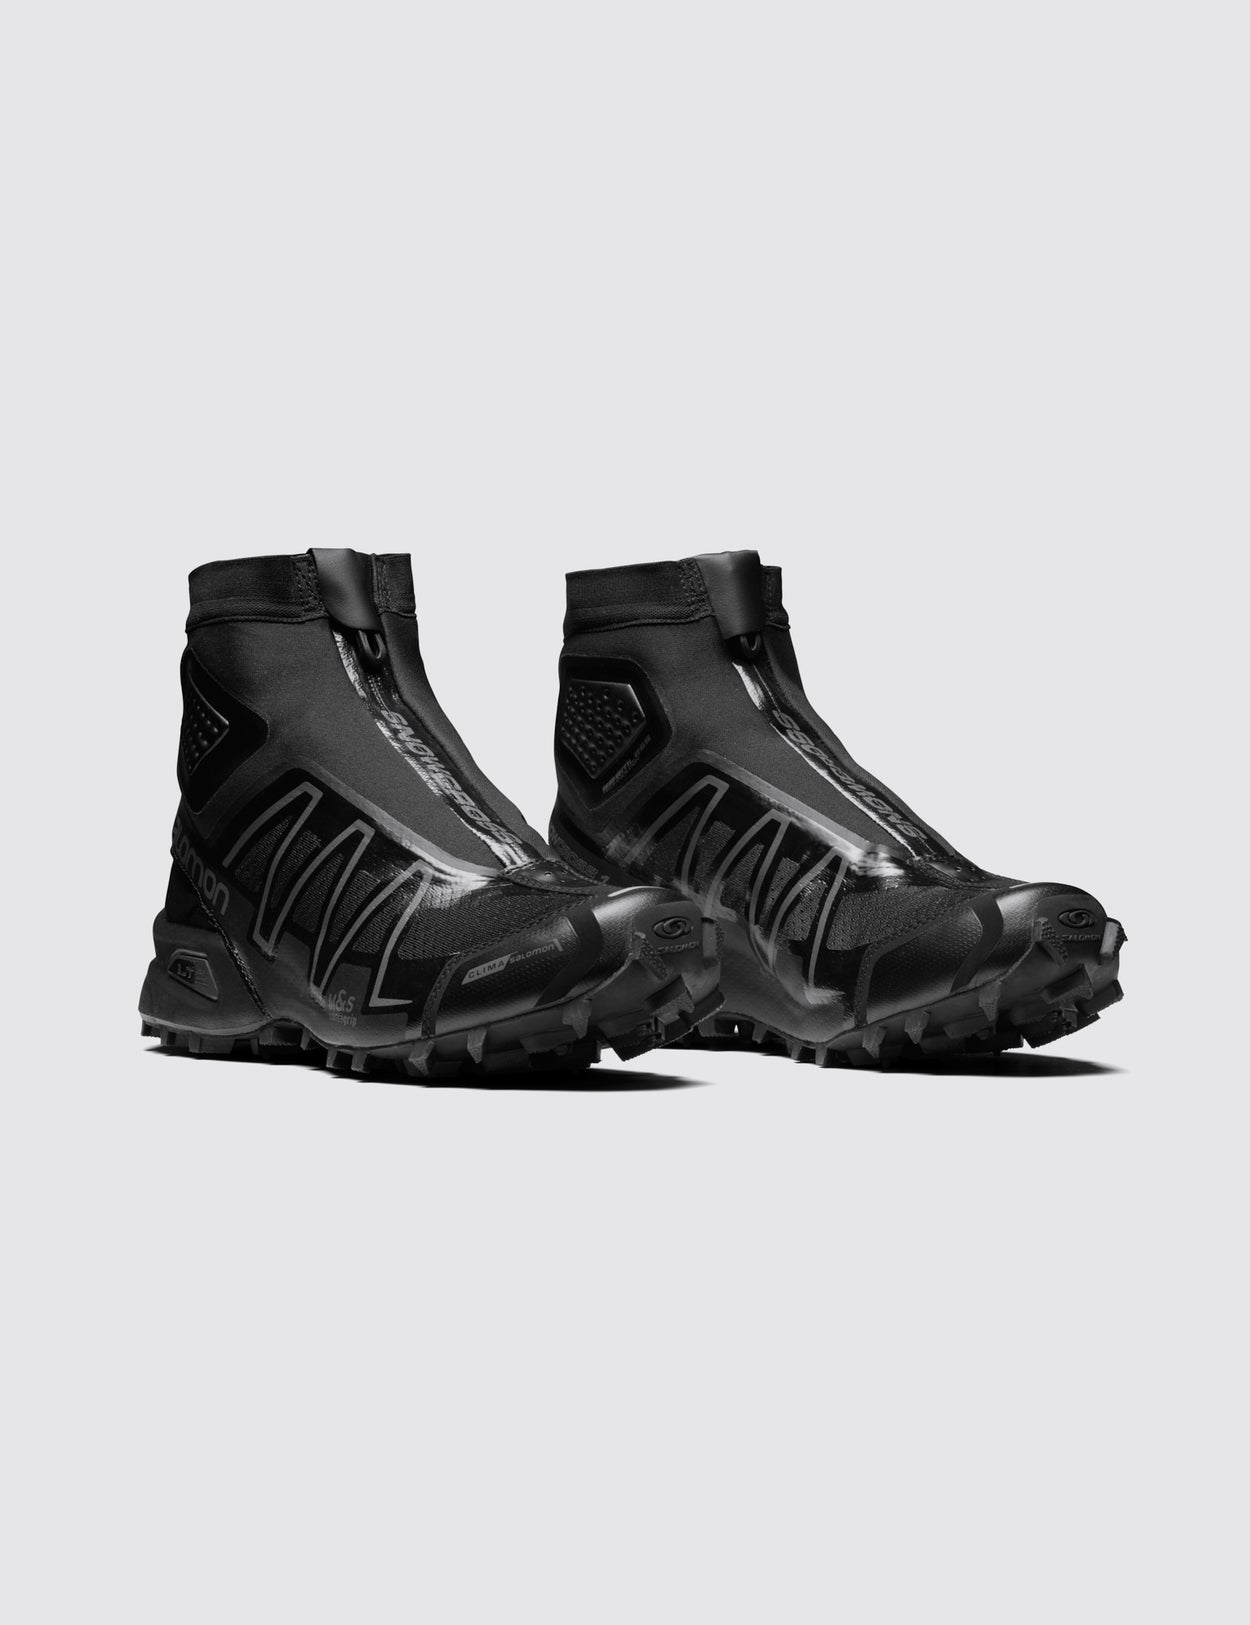 SALOMON ADVANCED BLACK SNOWCROSS ADV SNEAKERS